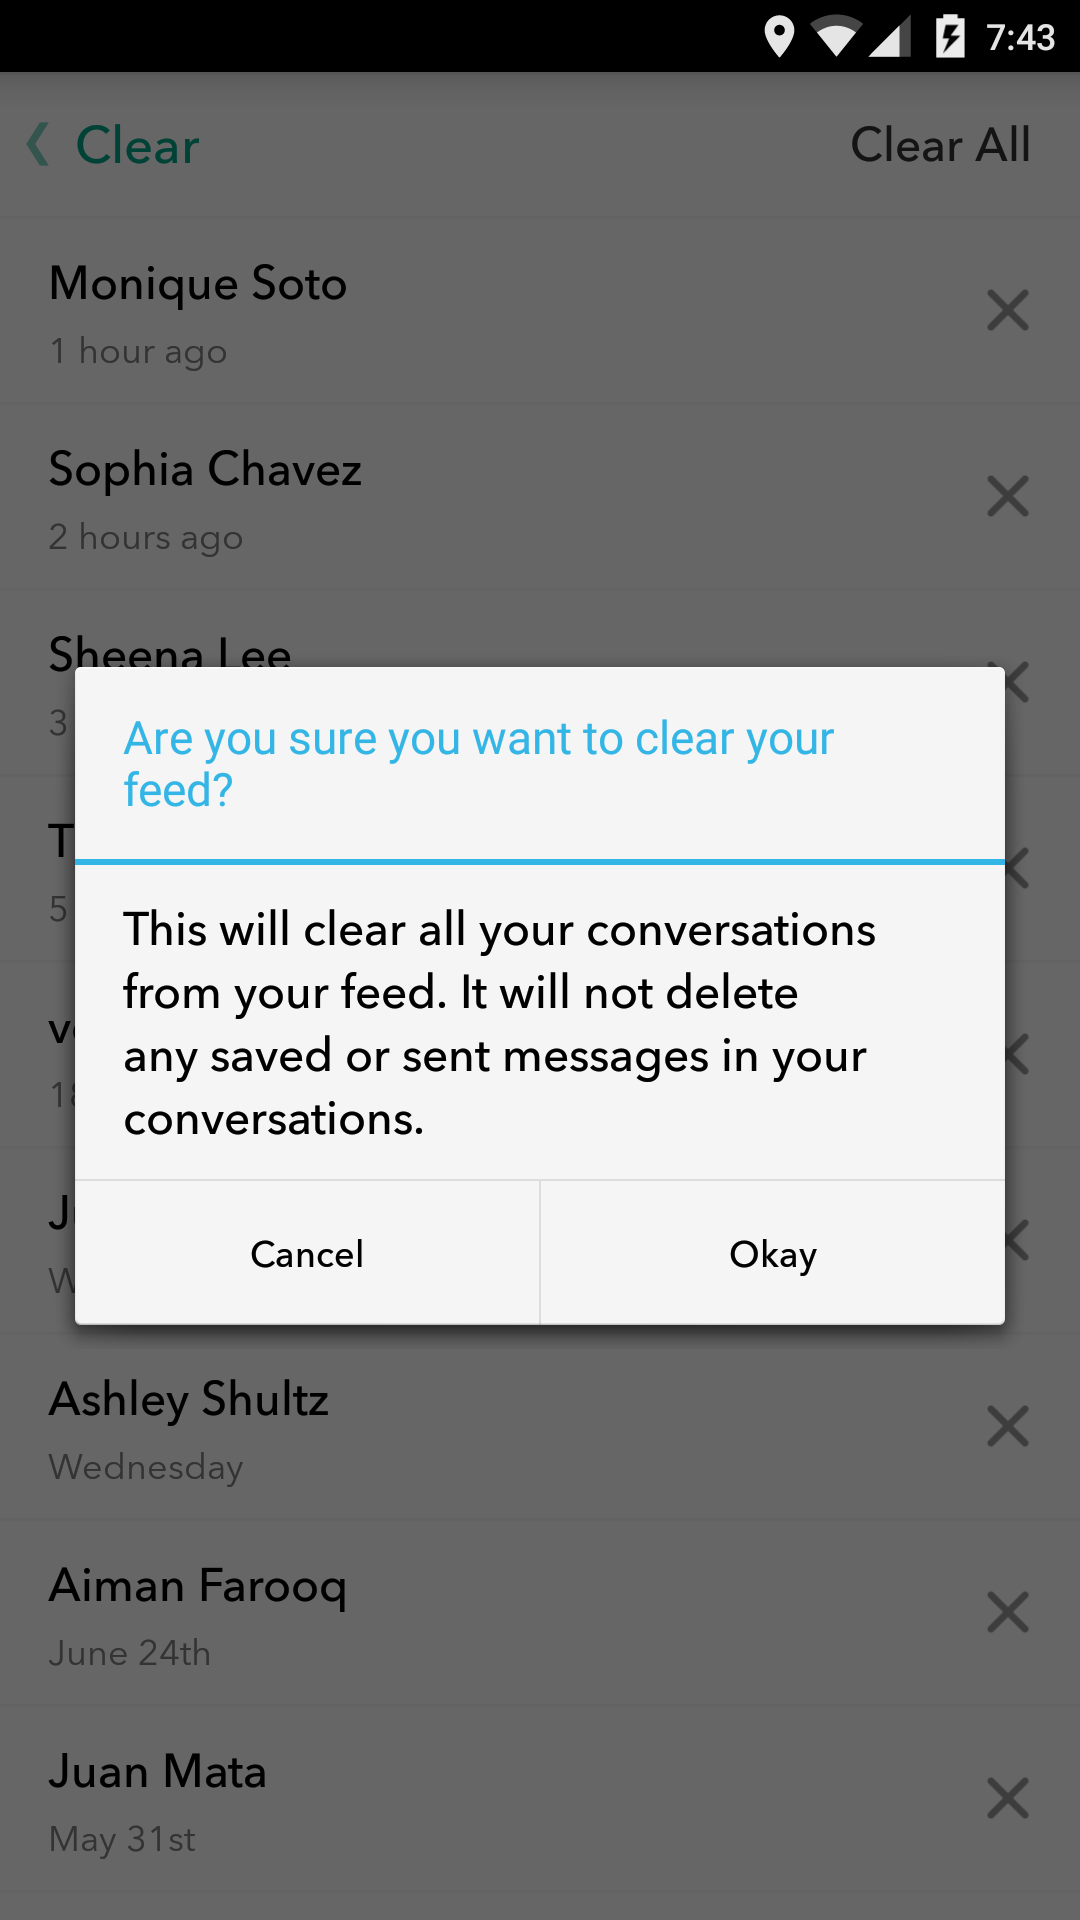 Conversations You Have Clear Out Whenever You Leave The Chat, But The Main  Conversation List €� Including All The People You've Recently Been Chatting  With